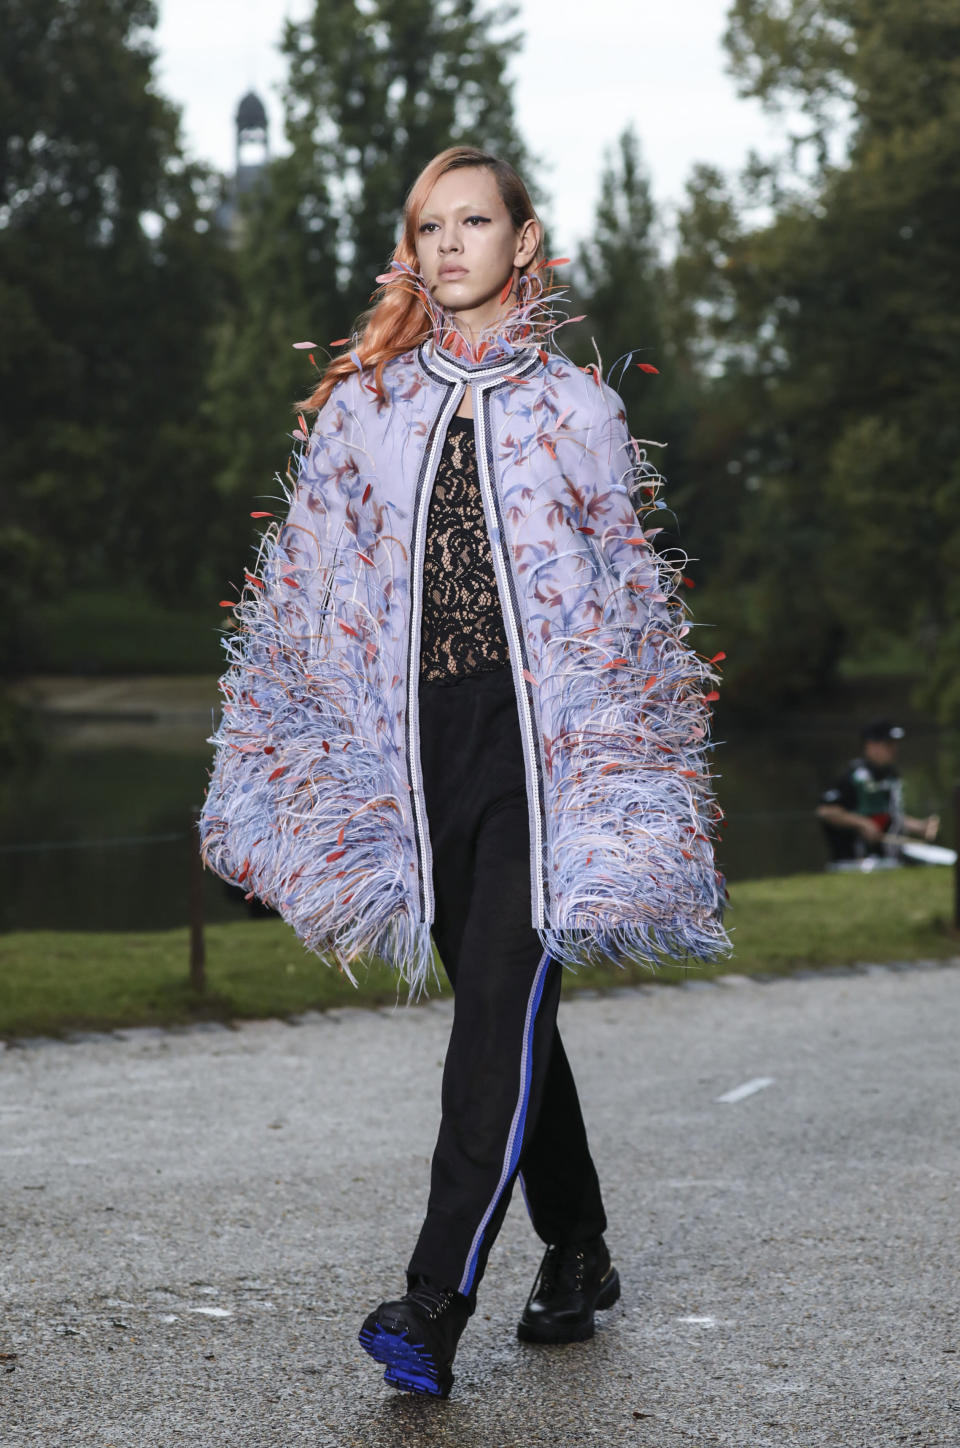 A model wears a creation for the Koche Spring-Summer 2021 fashion collection, Tuesday, Sept. 29, 2020, during Paris fashion week. (Photo by Vianney Le Caer/Invision/AP)